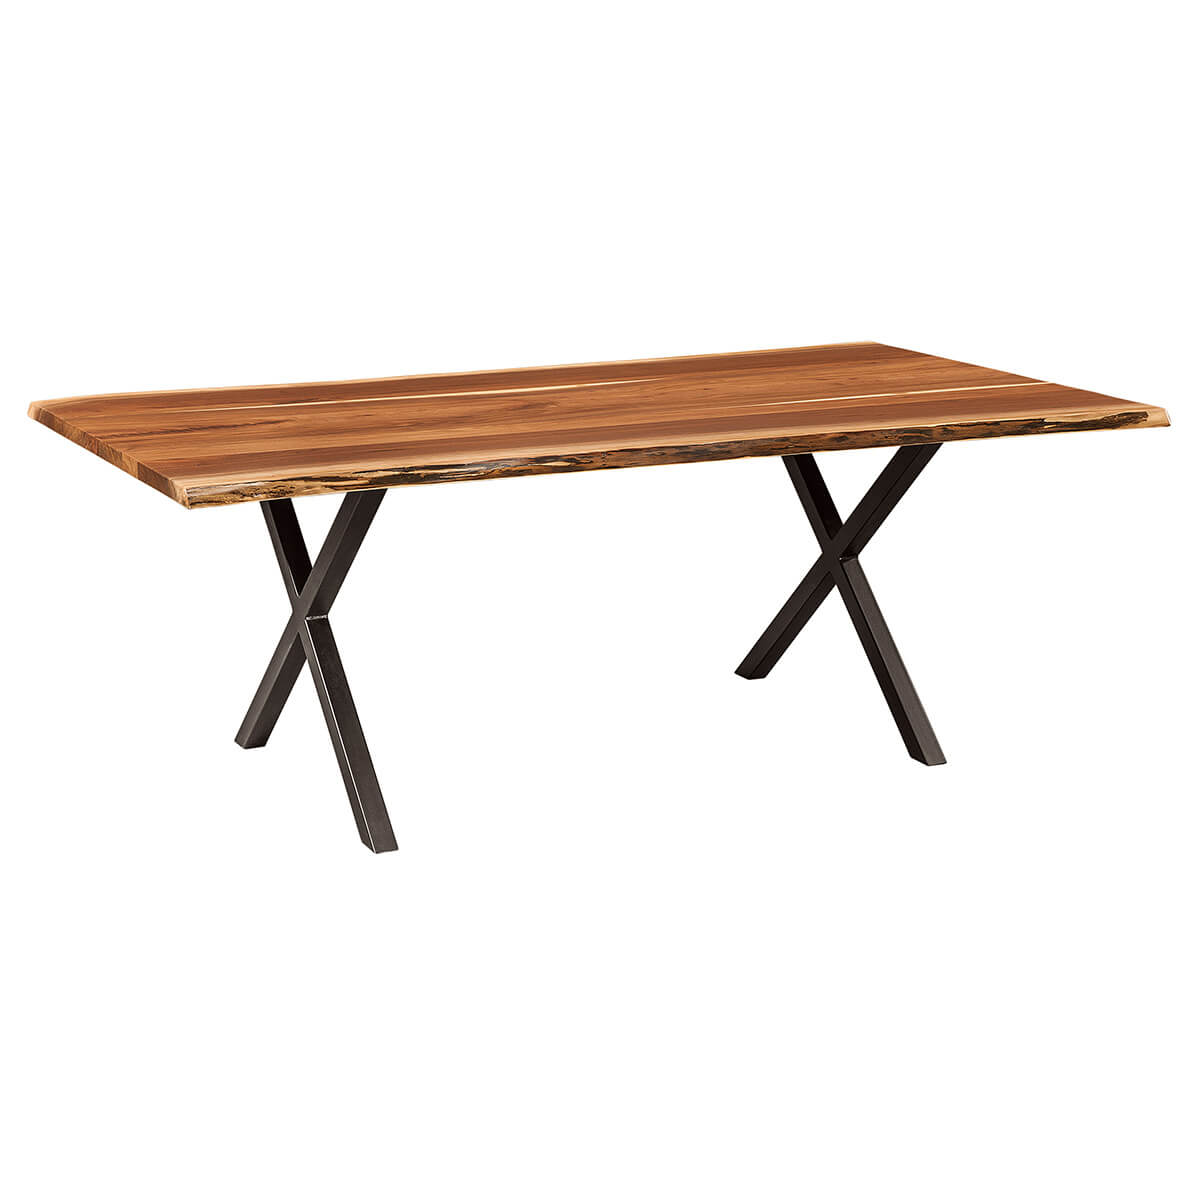 1.3-xavier-trestle-table.jpg